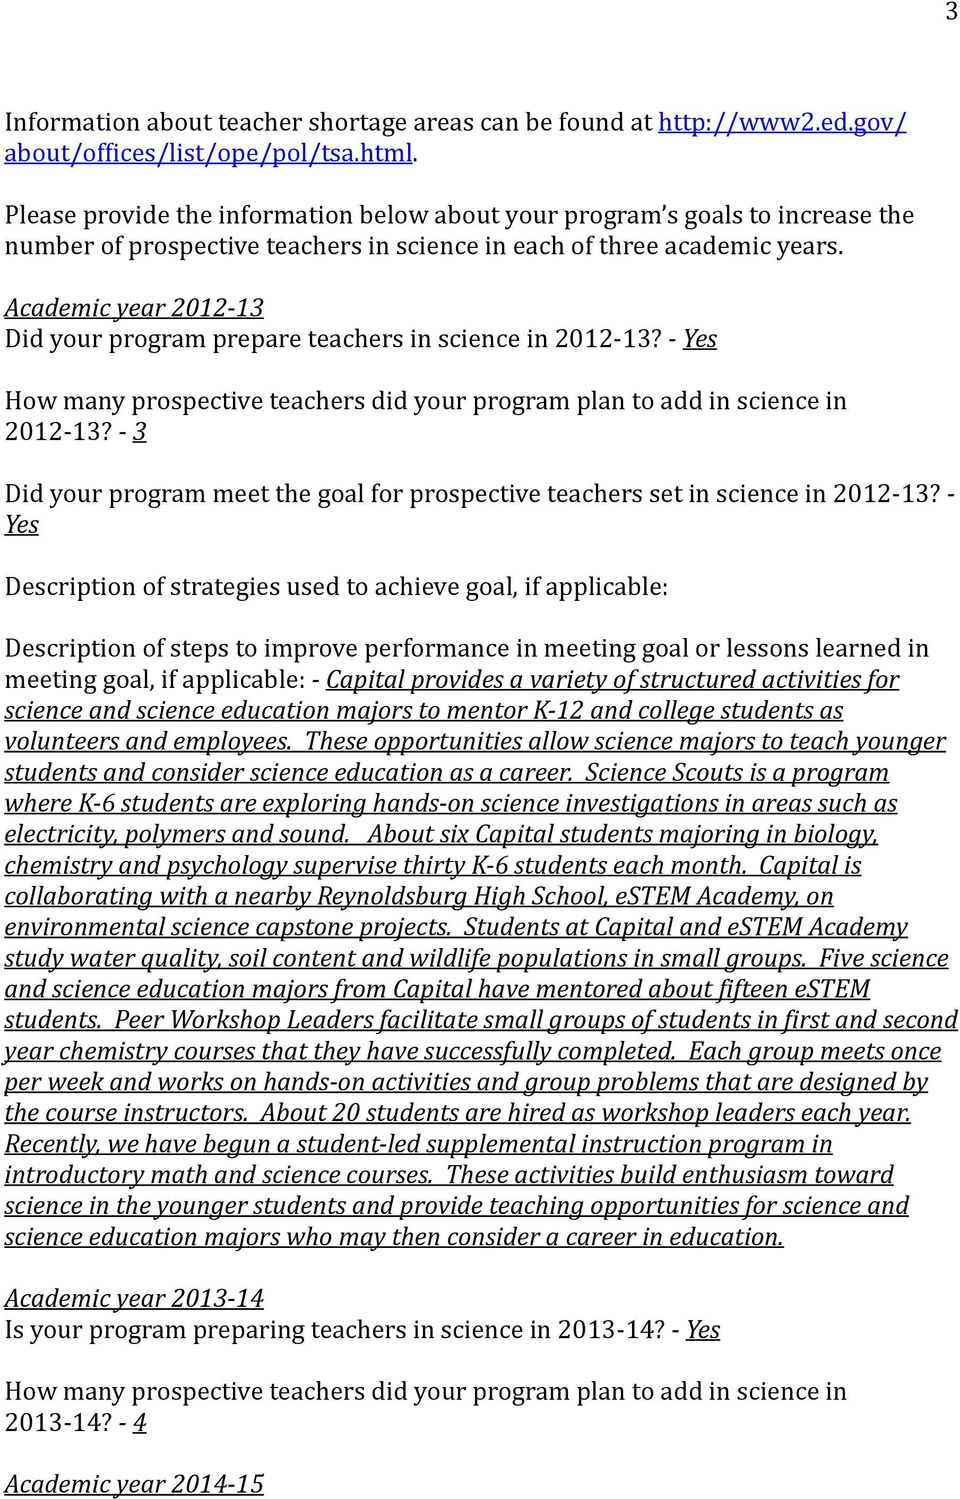 Academic 2012-13 Did your program prepare teachers in science in 2012-13? - How many prospective teachers did your program plan to add in science in 2012-13?